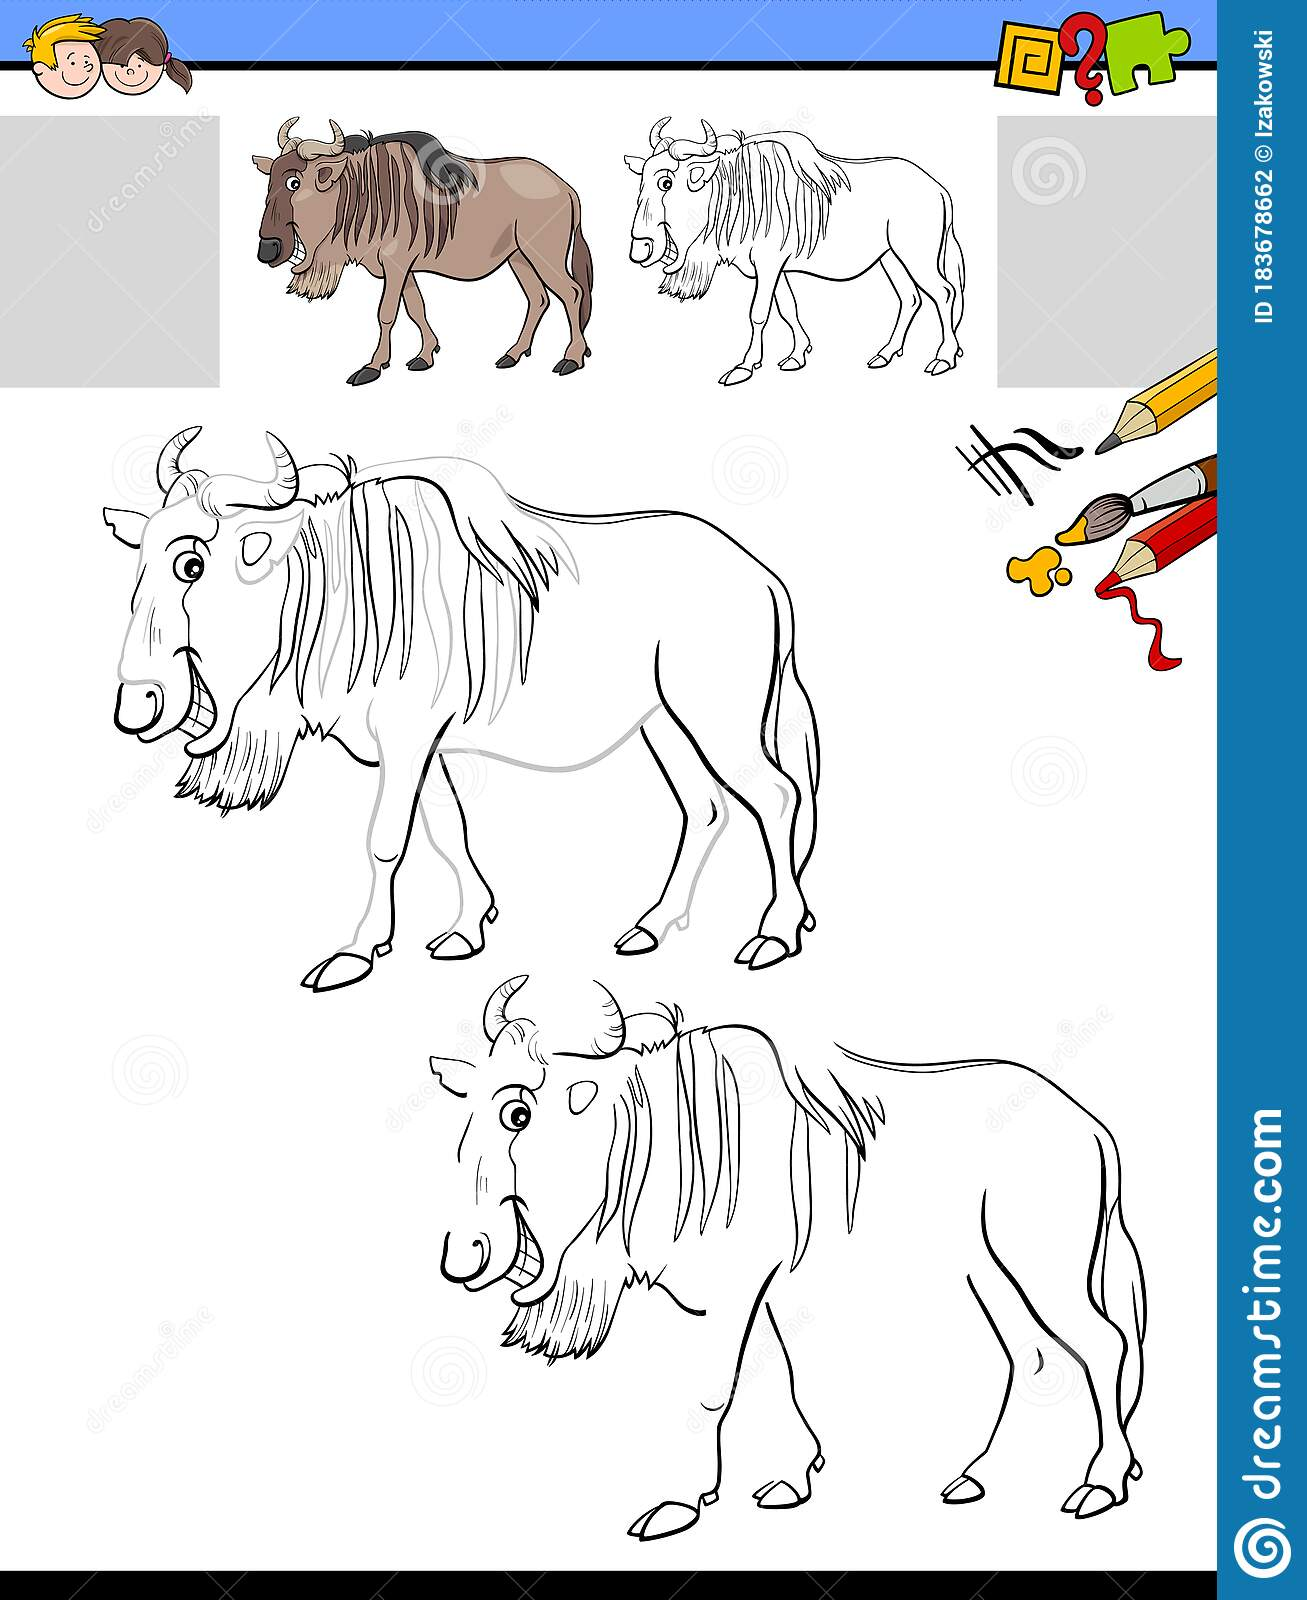 Drawing And Coloring Worksheet With Wildbeast Animal Stock